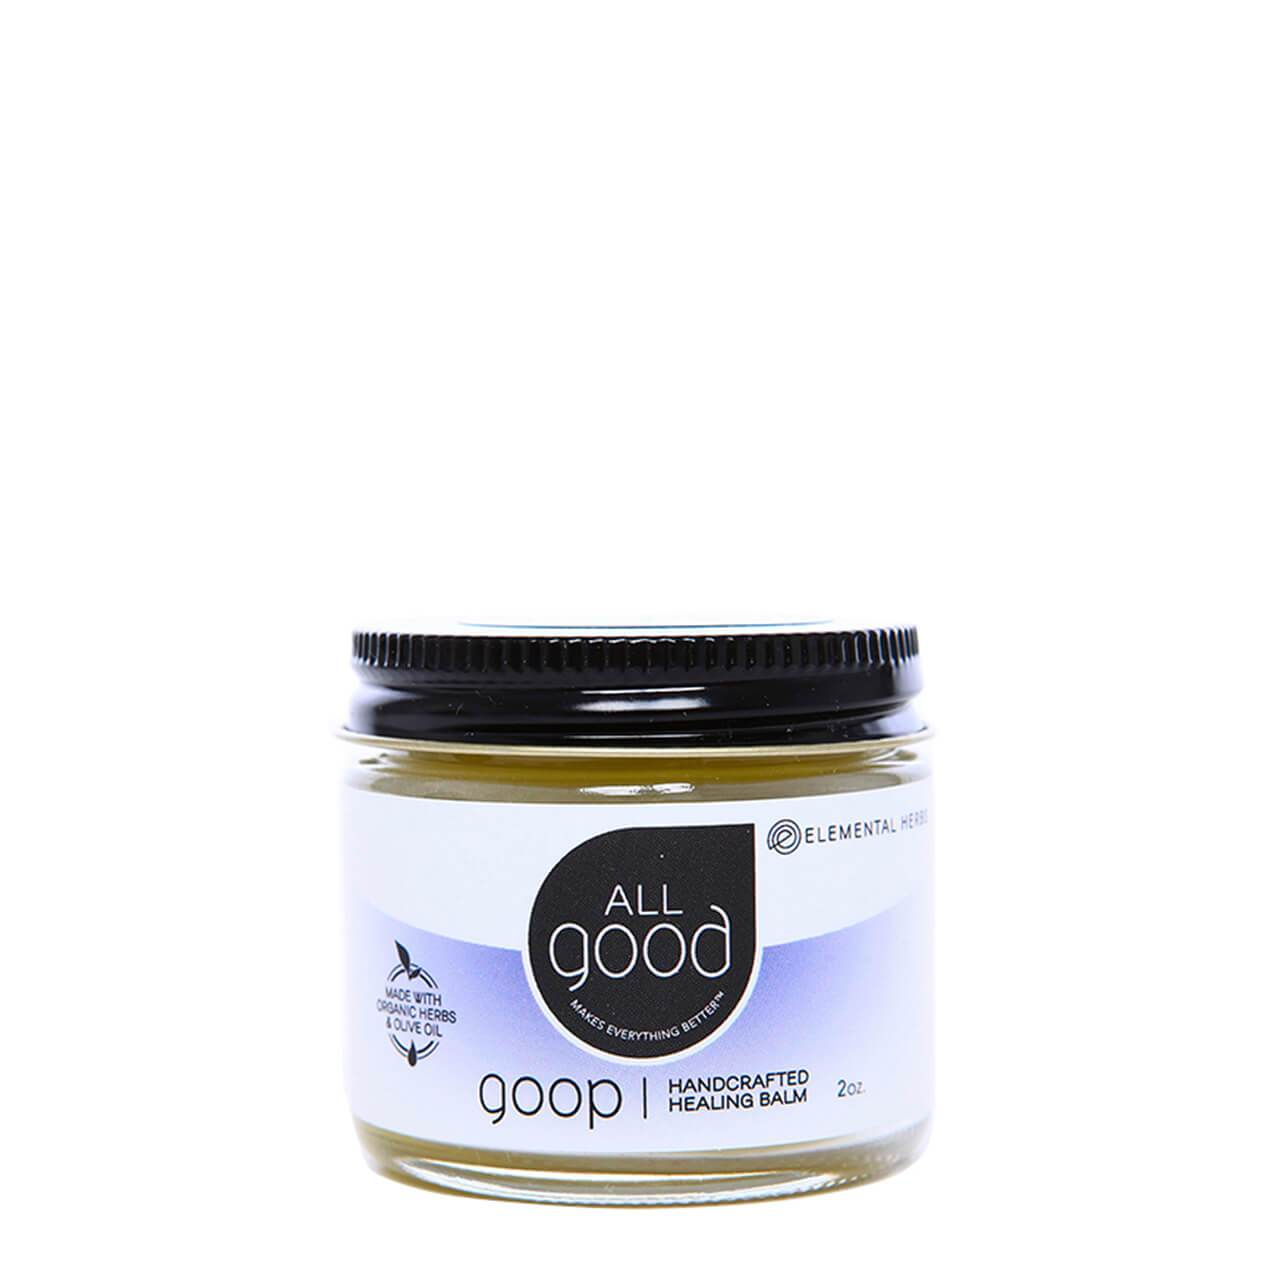 Personal Care - All Good - Goop Organic Healing Balm, 56g